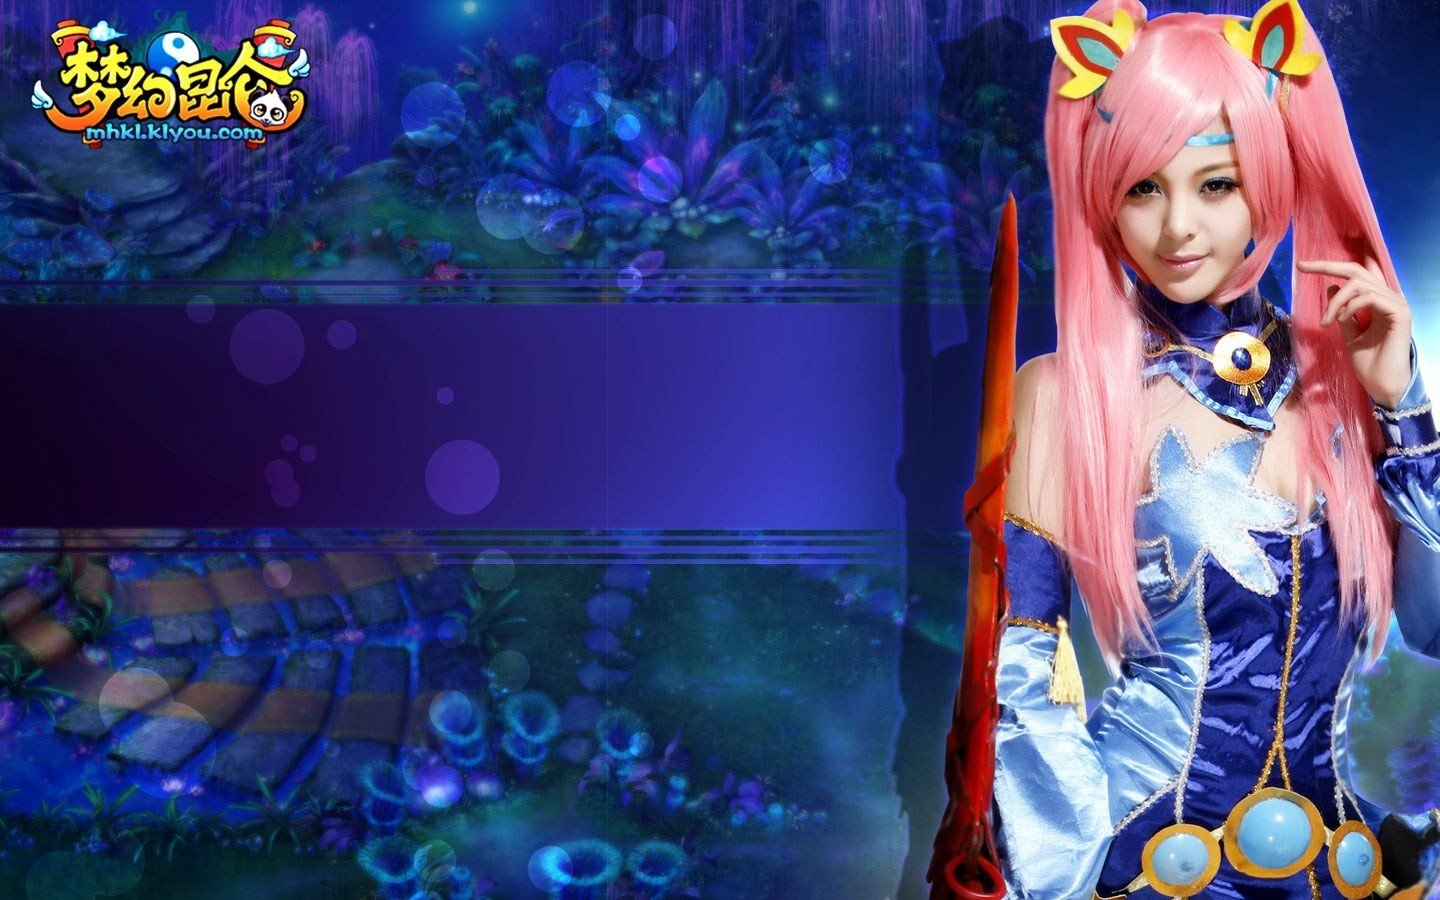 cosplay asians HD Wallpaper